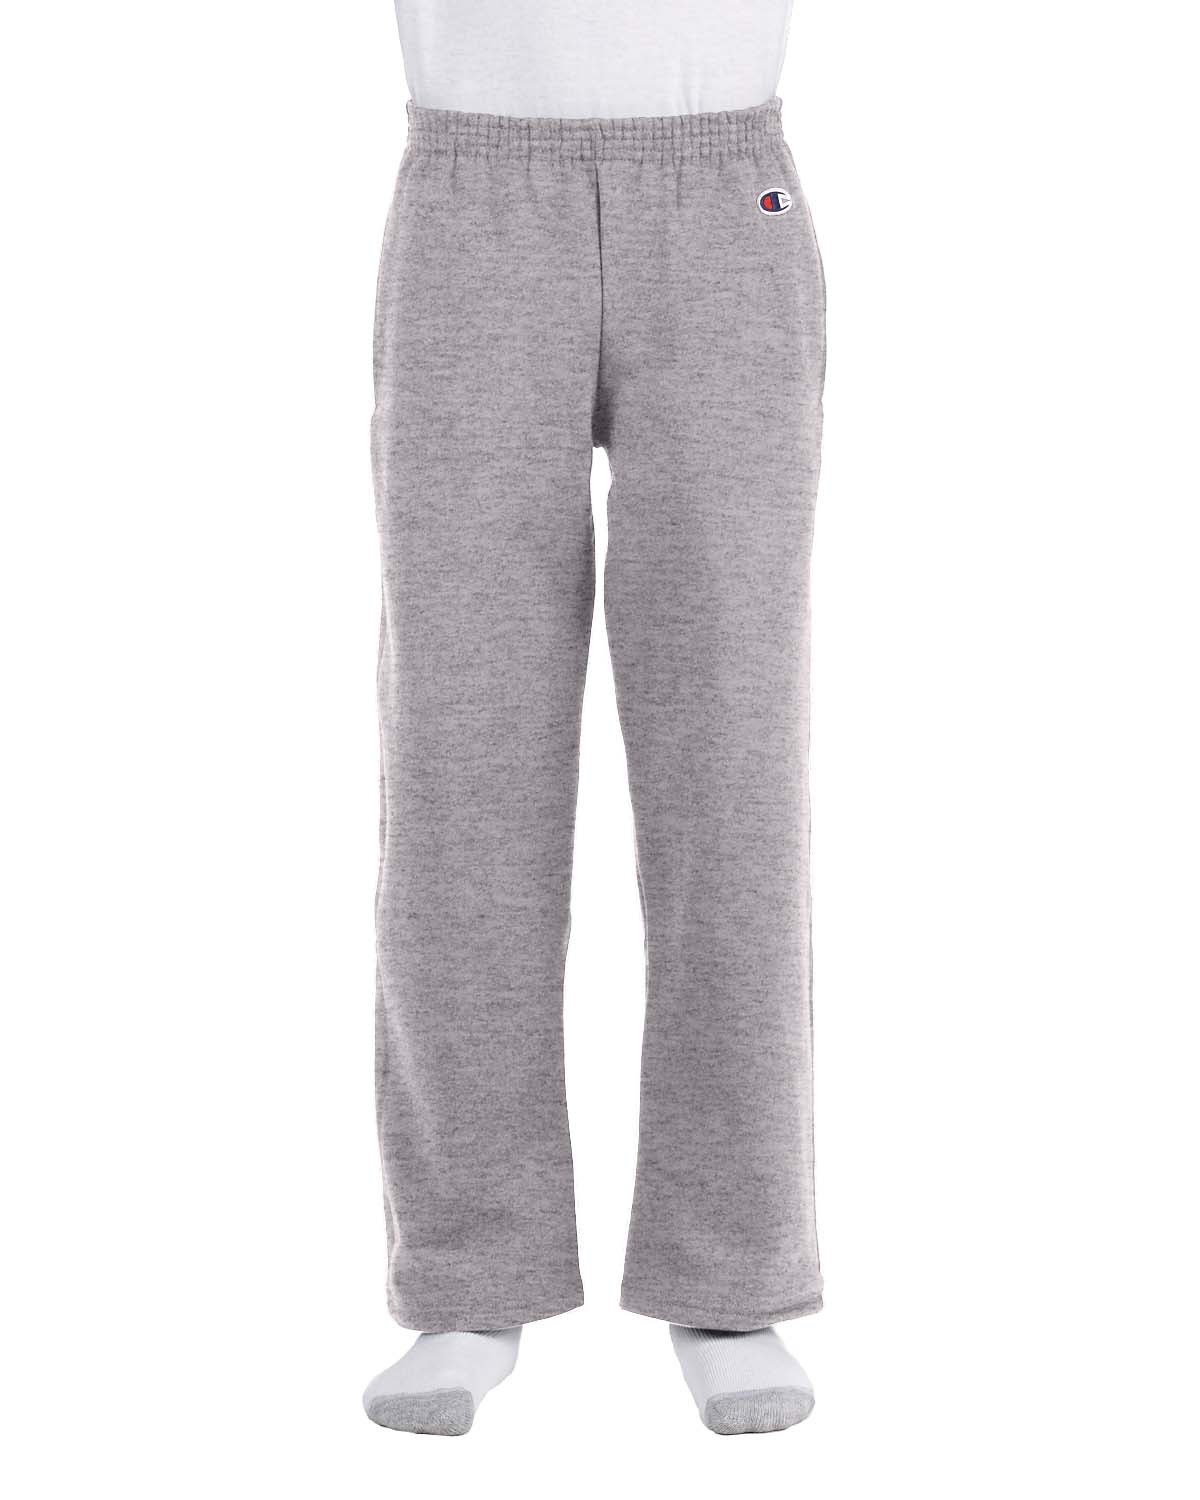 Youth 9 oz. Double Dry Eco® Open-Bottom Fleece Pant